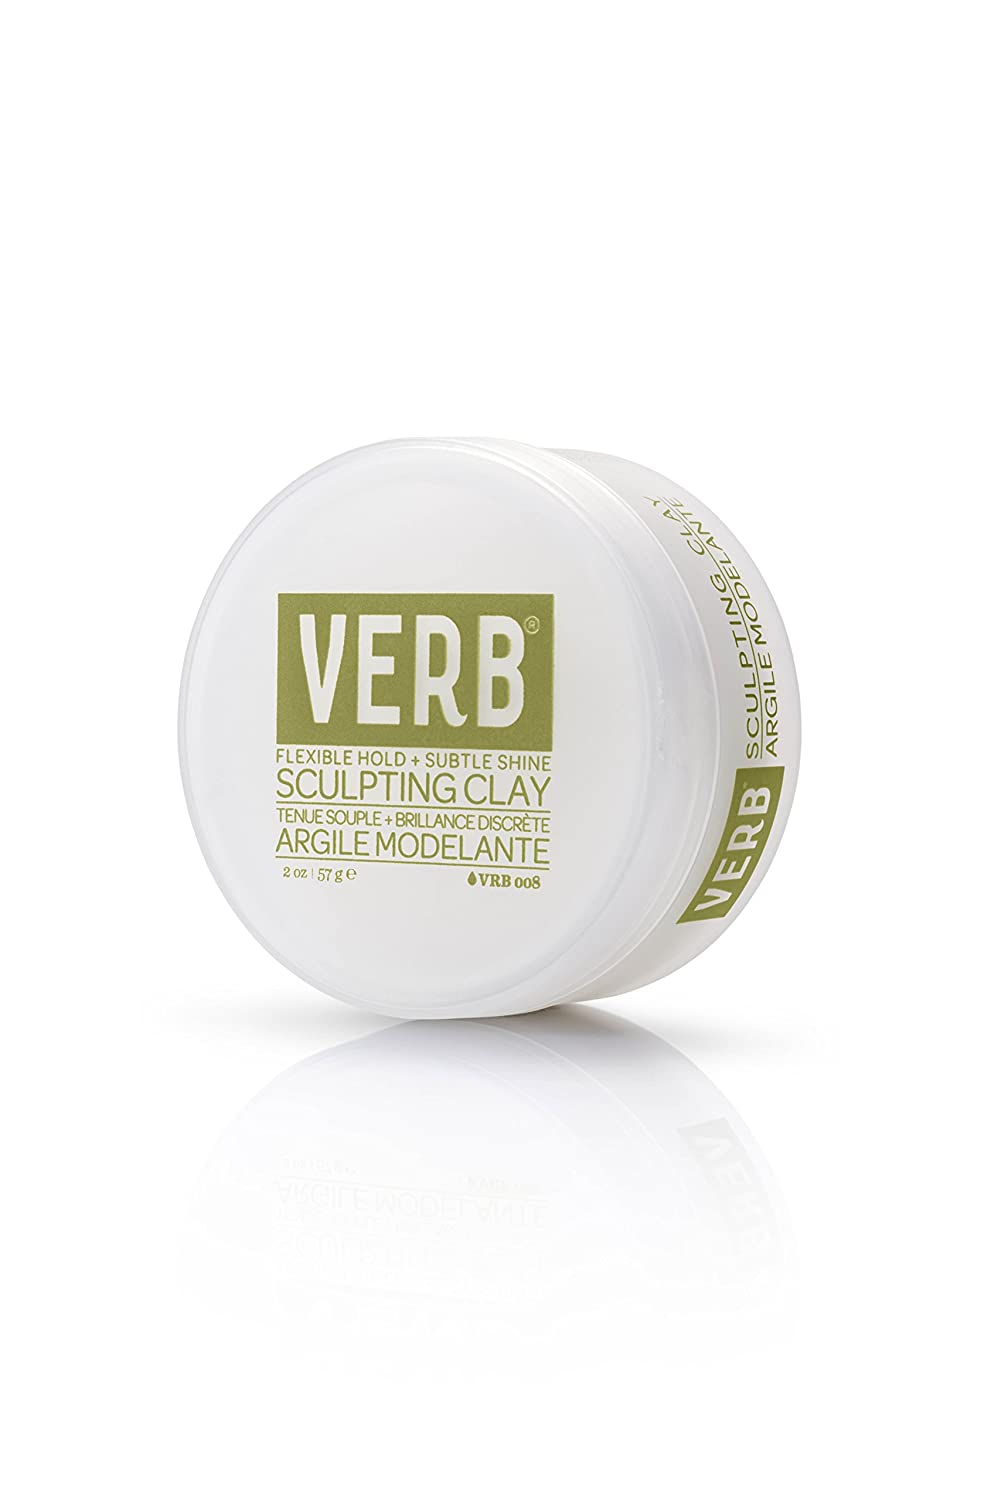 Verb Sculpting Clay - Flexible Hold + Subtle Shine 2oz